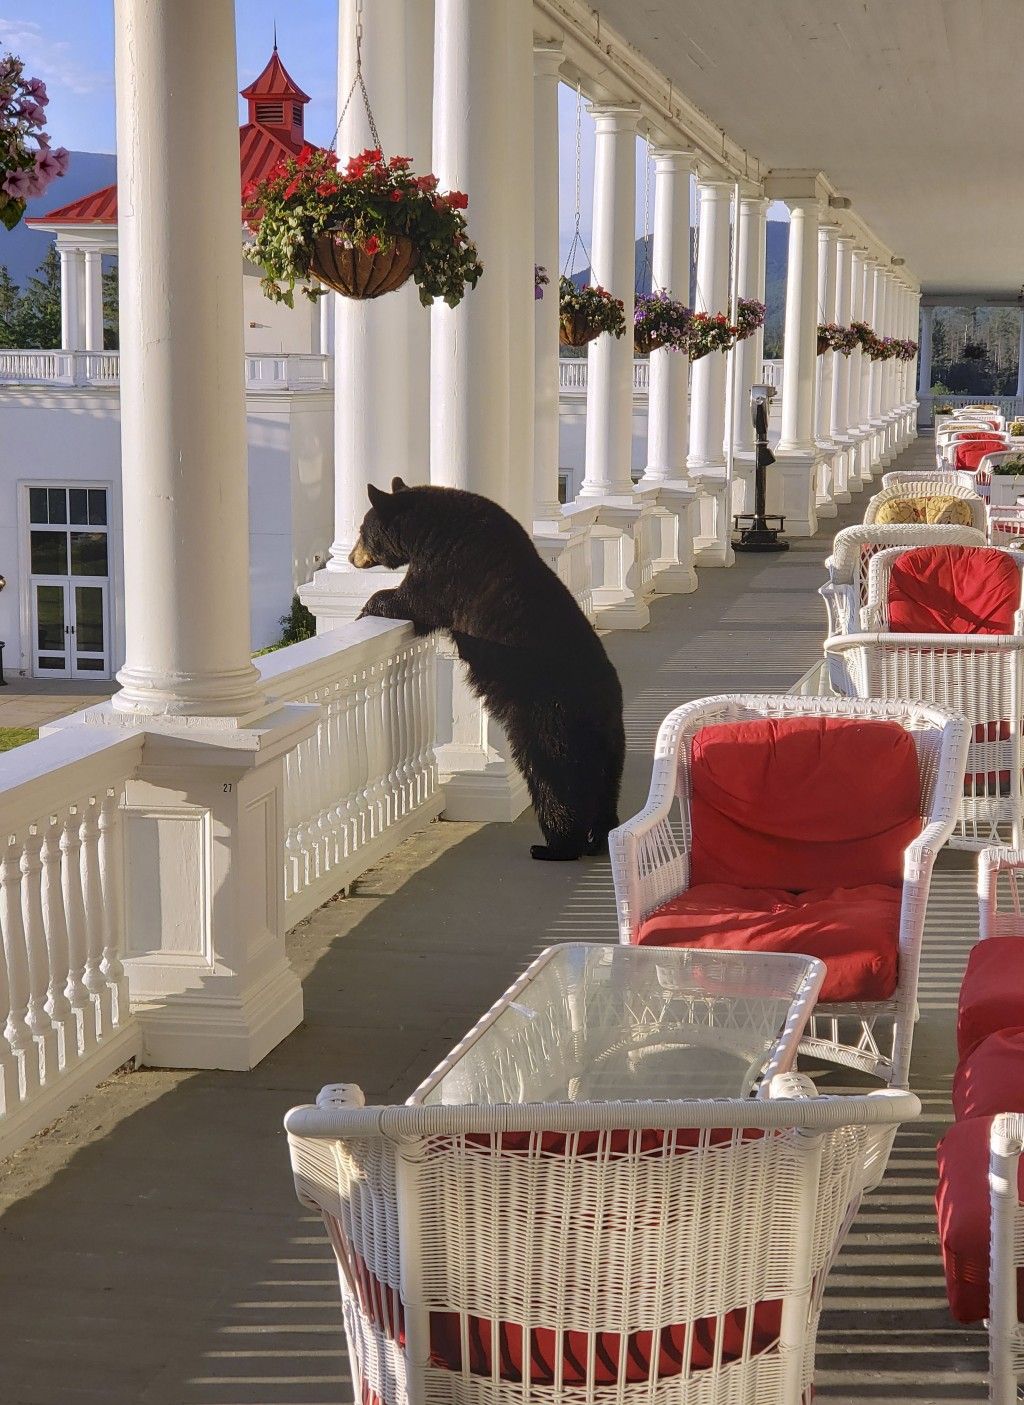 In this Saturday, June 29, 2019 photo provided by Sam Geesaman, a black bear peers over a railing on the back veranda at the Omni Mount Washington Res